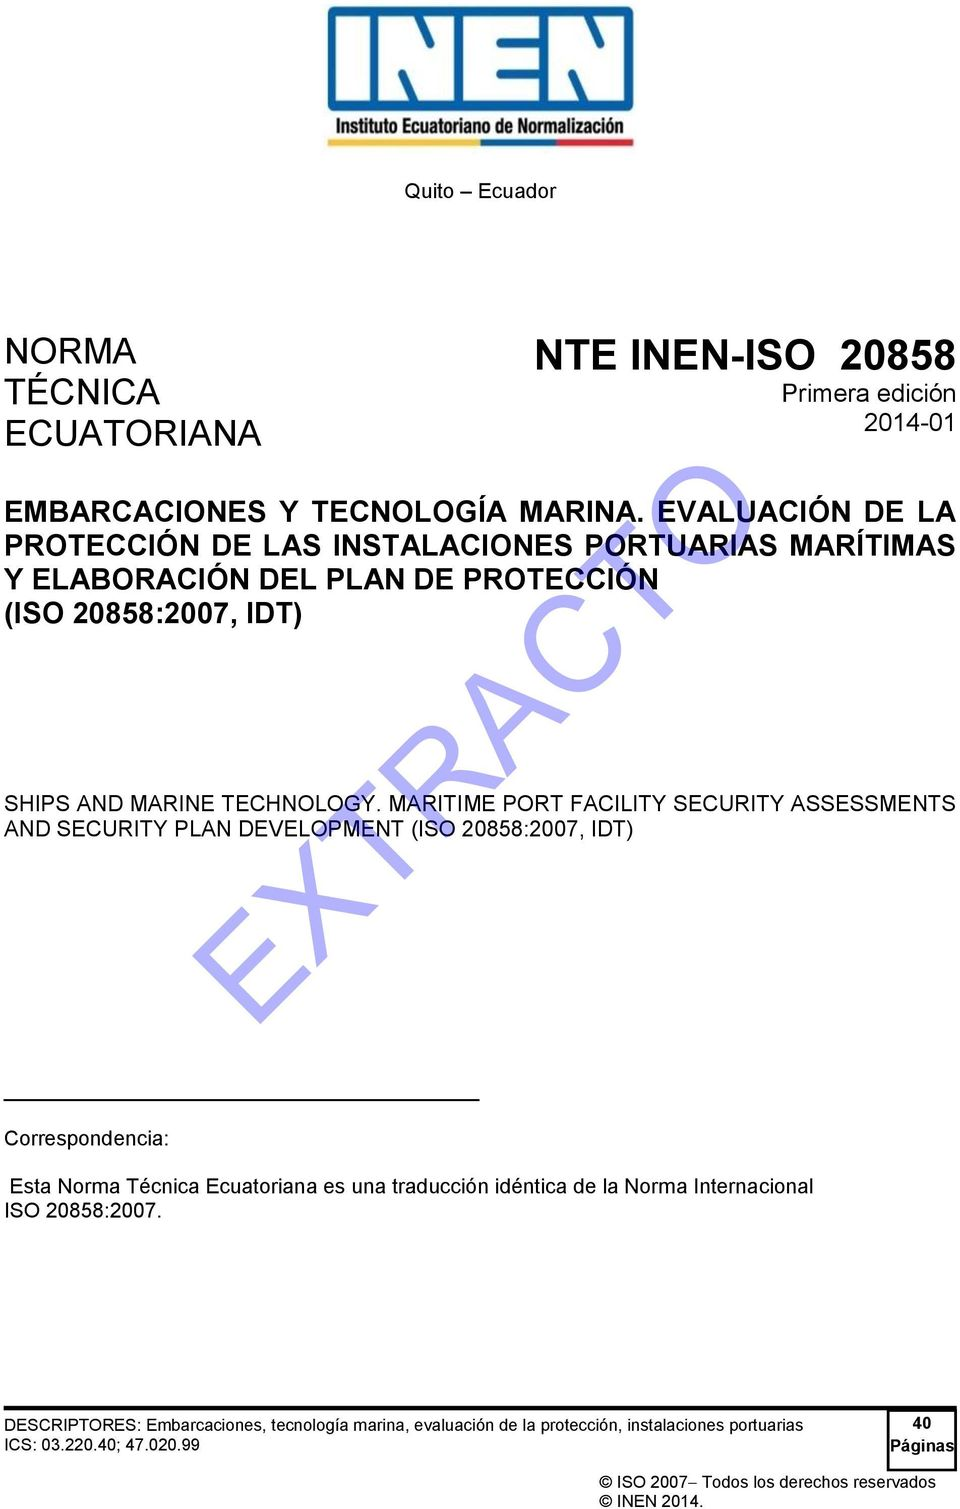 MARITIME PORT FACILITY SECURITY ASSESSMENTS AND SECURITY PLAN DEVELOPMENT (ISO 20858:2007, IDT) Correspondencia: Esta Norma Técnica Ecuatoriana es una traducción